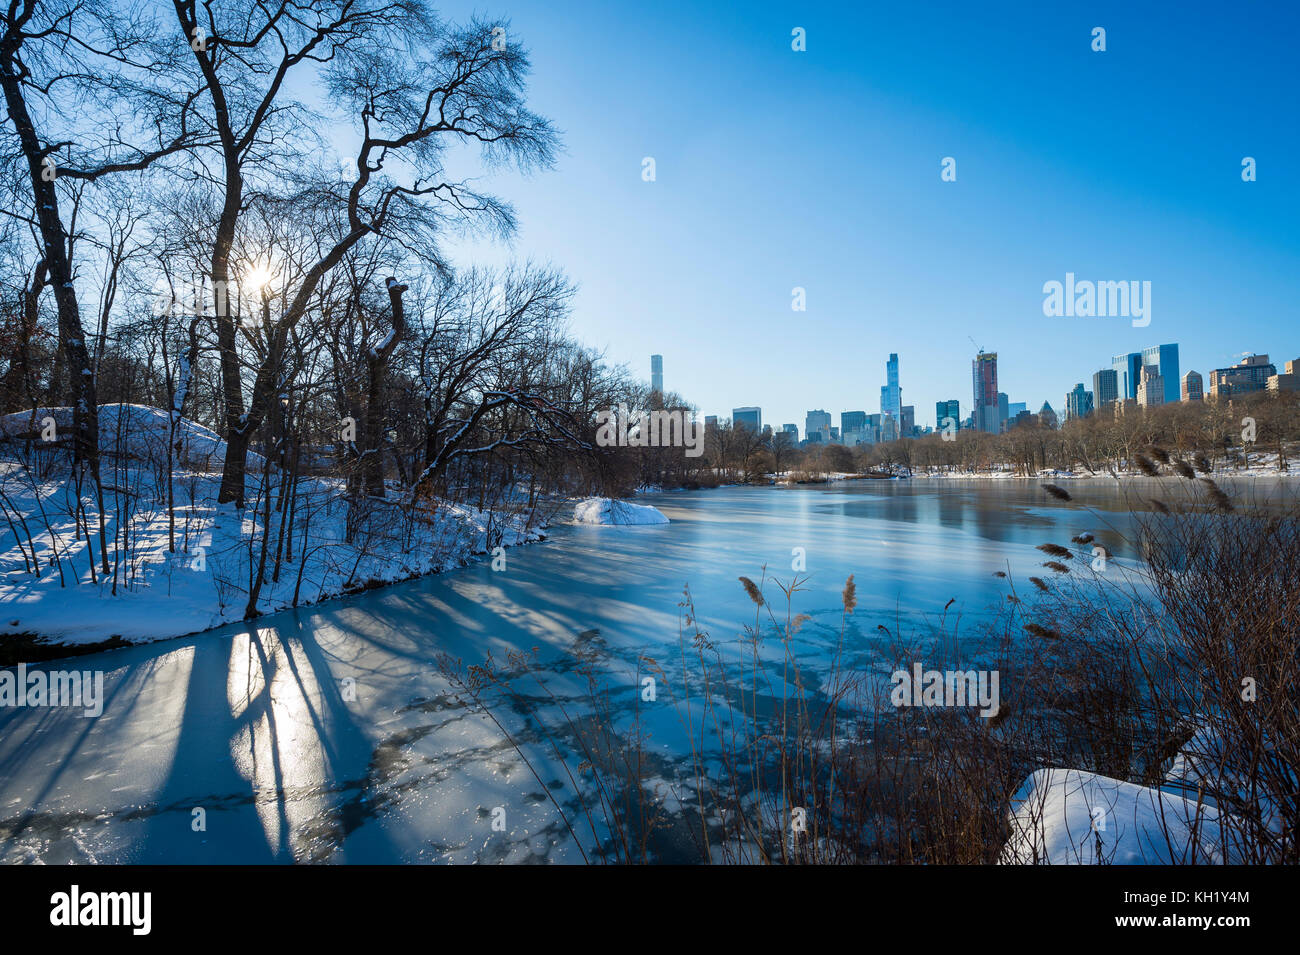 Scenic view of the Midtown skyline reflecting in the ice of the frozen Central Park lake the morning after a winter - Stock Image